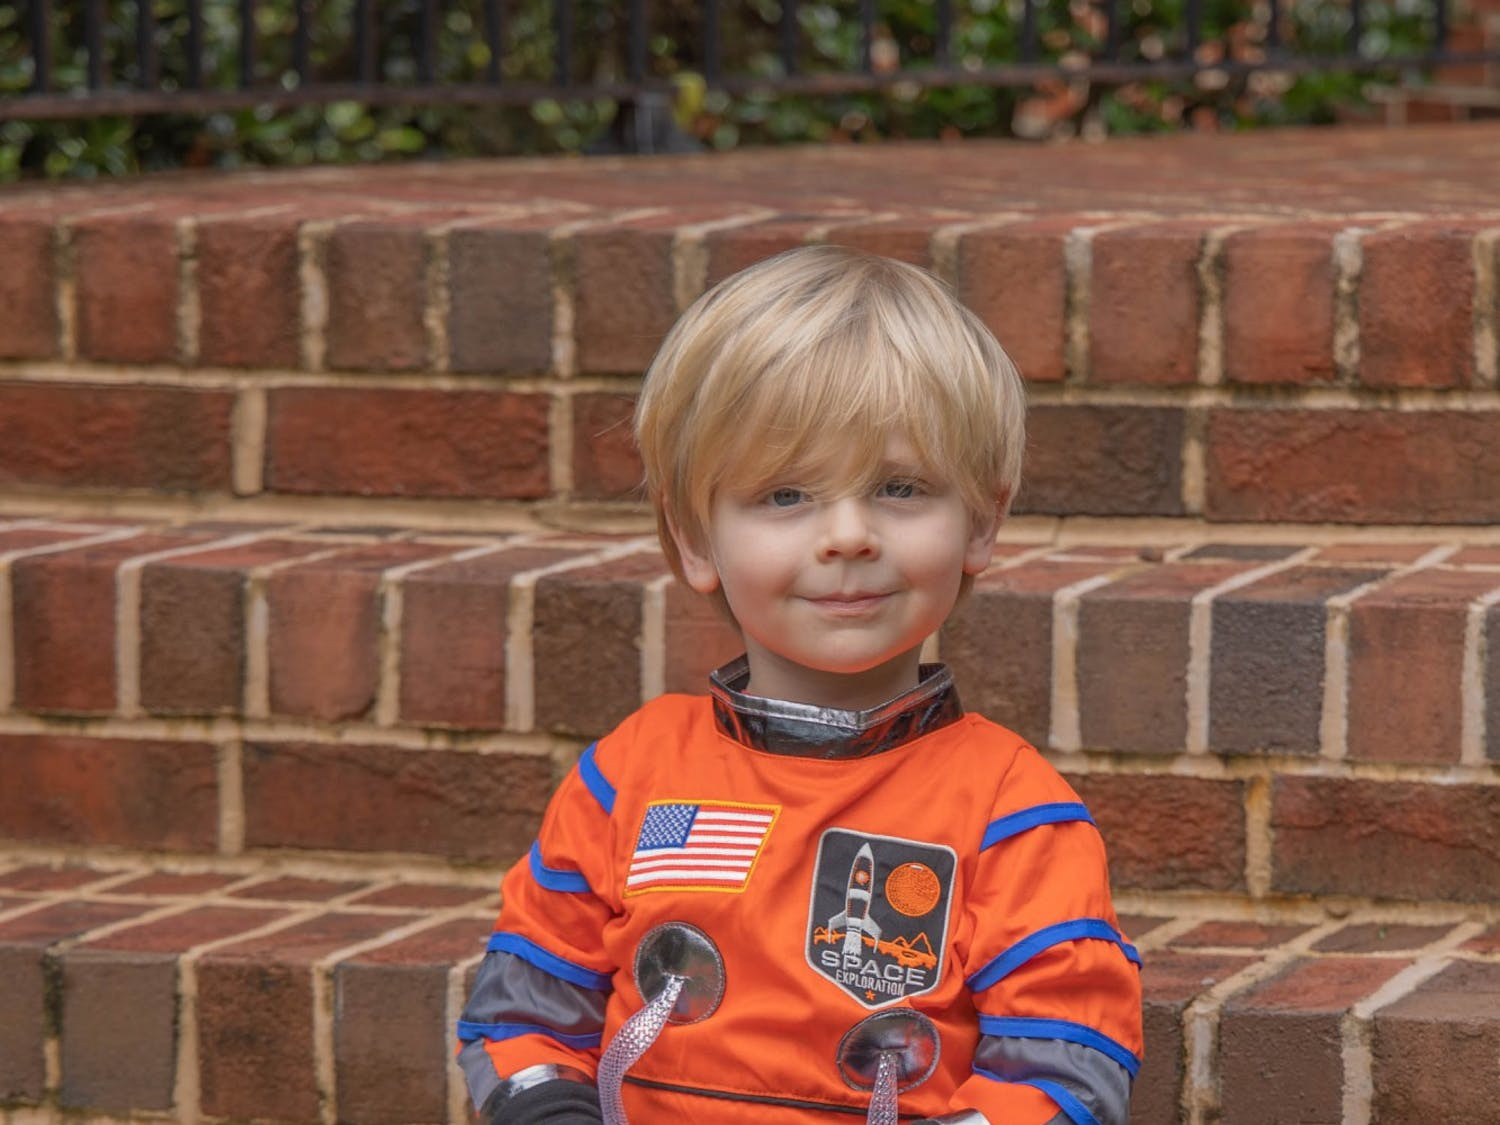 Joel Rose, 3, poses for a portrait at his home in Chapel Hill on Monday, Oct. 26, 2020. Rose's neighborhood will throw a Halloween parade this year to allow children to enjoy the holiday safely amid the COVID-19 pandemic.